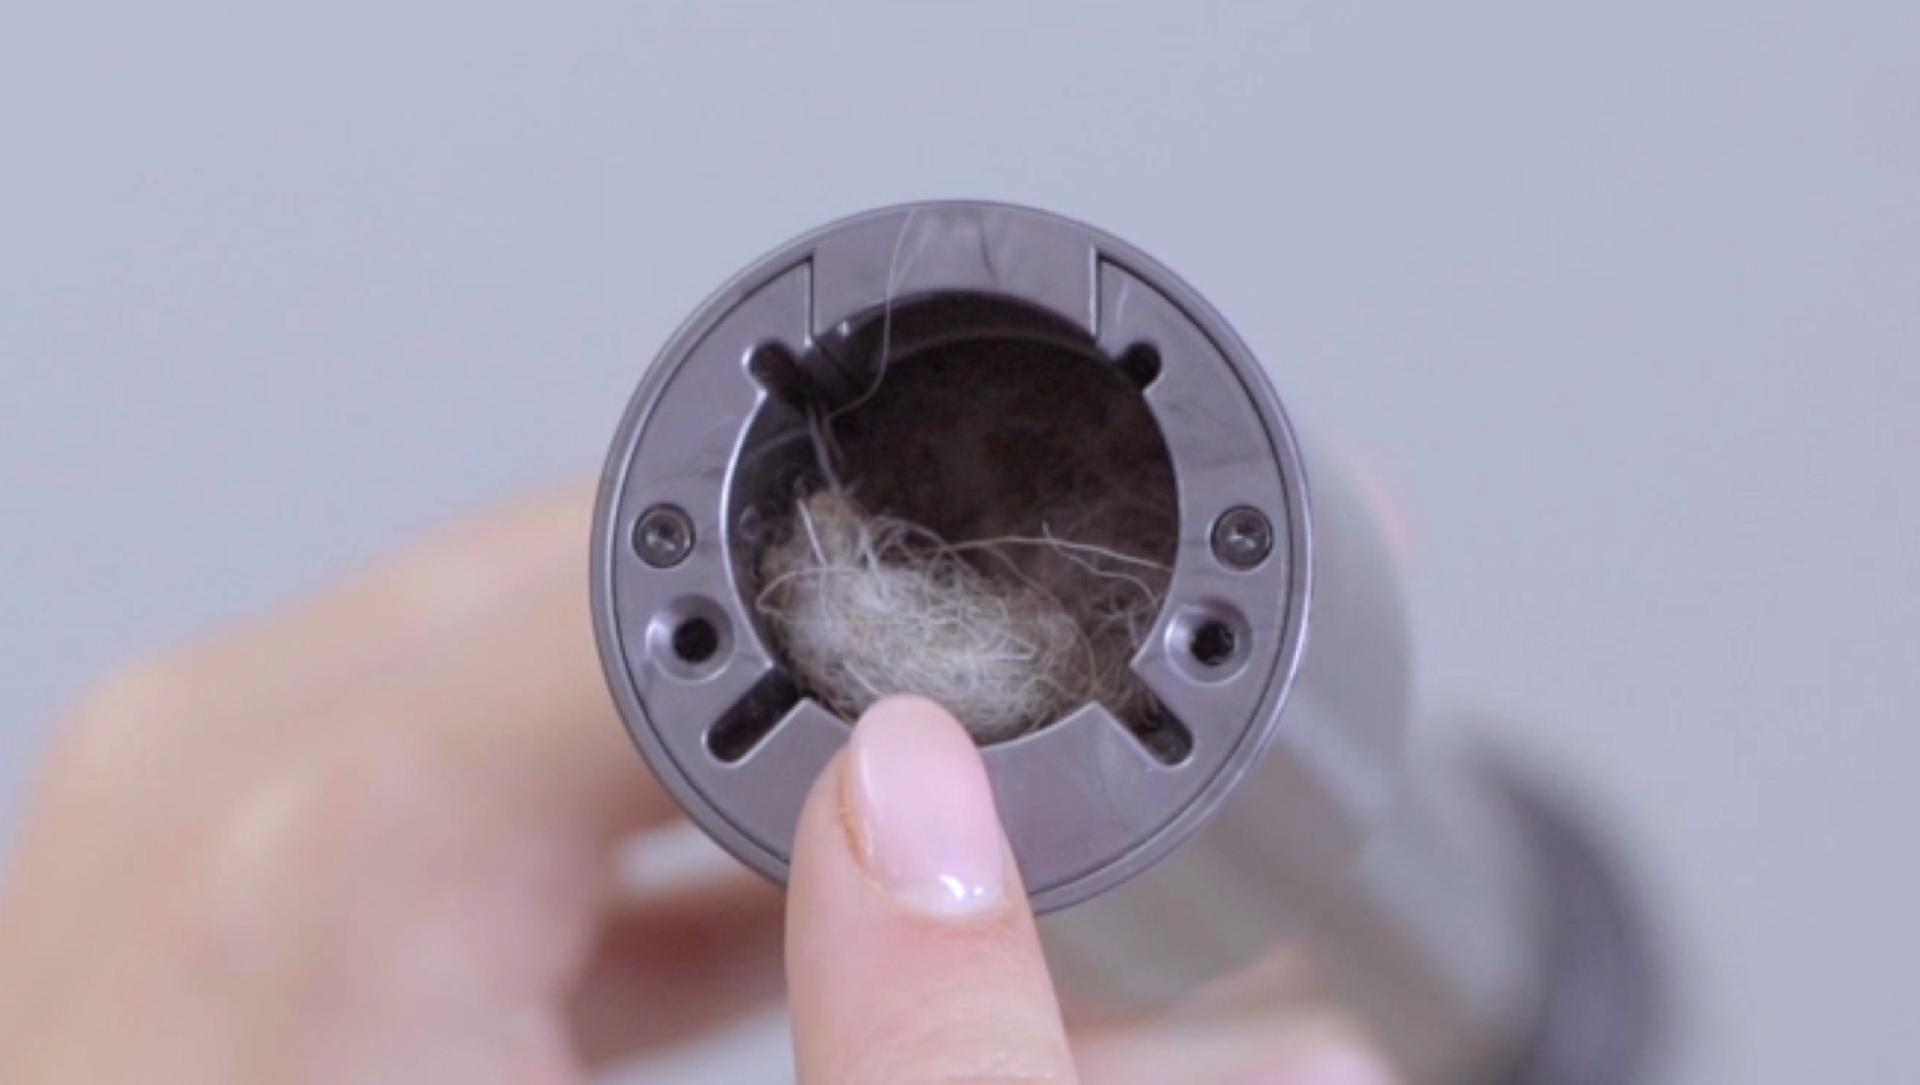 Video showing how to check for blockages